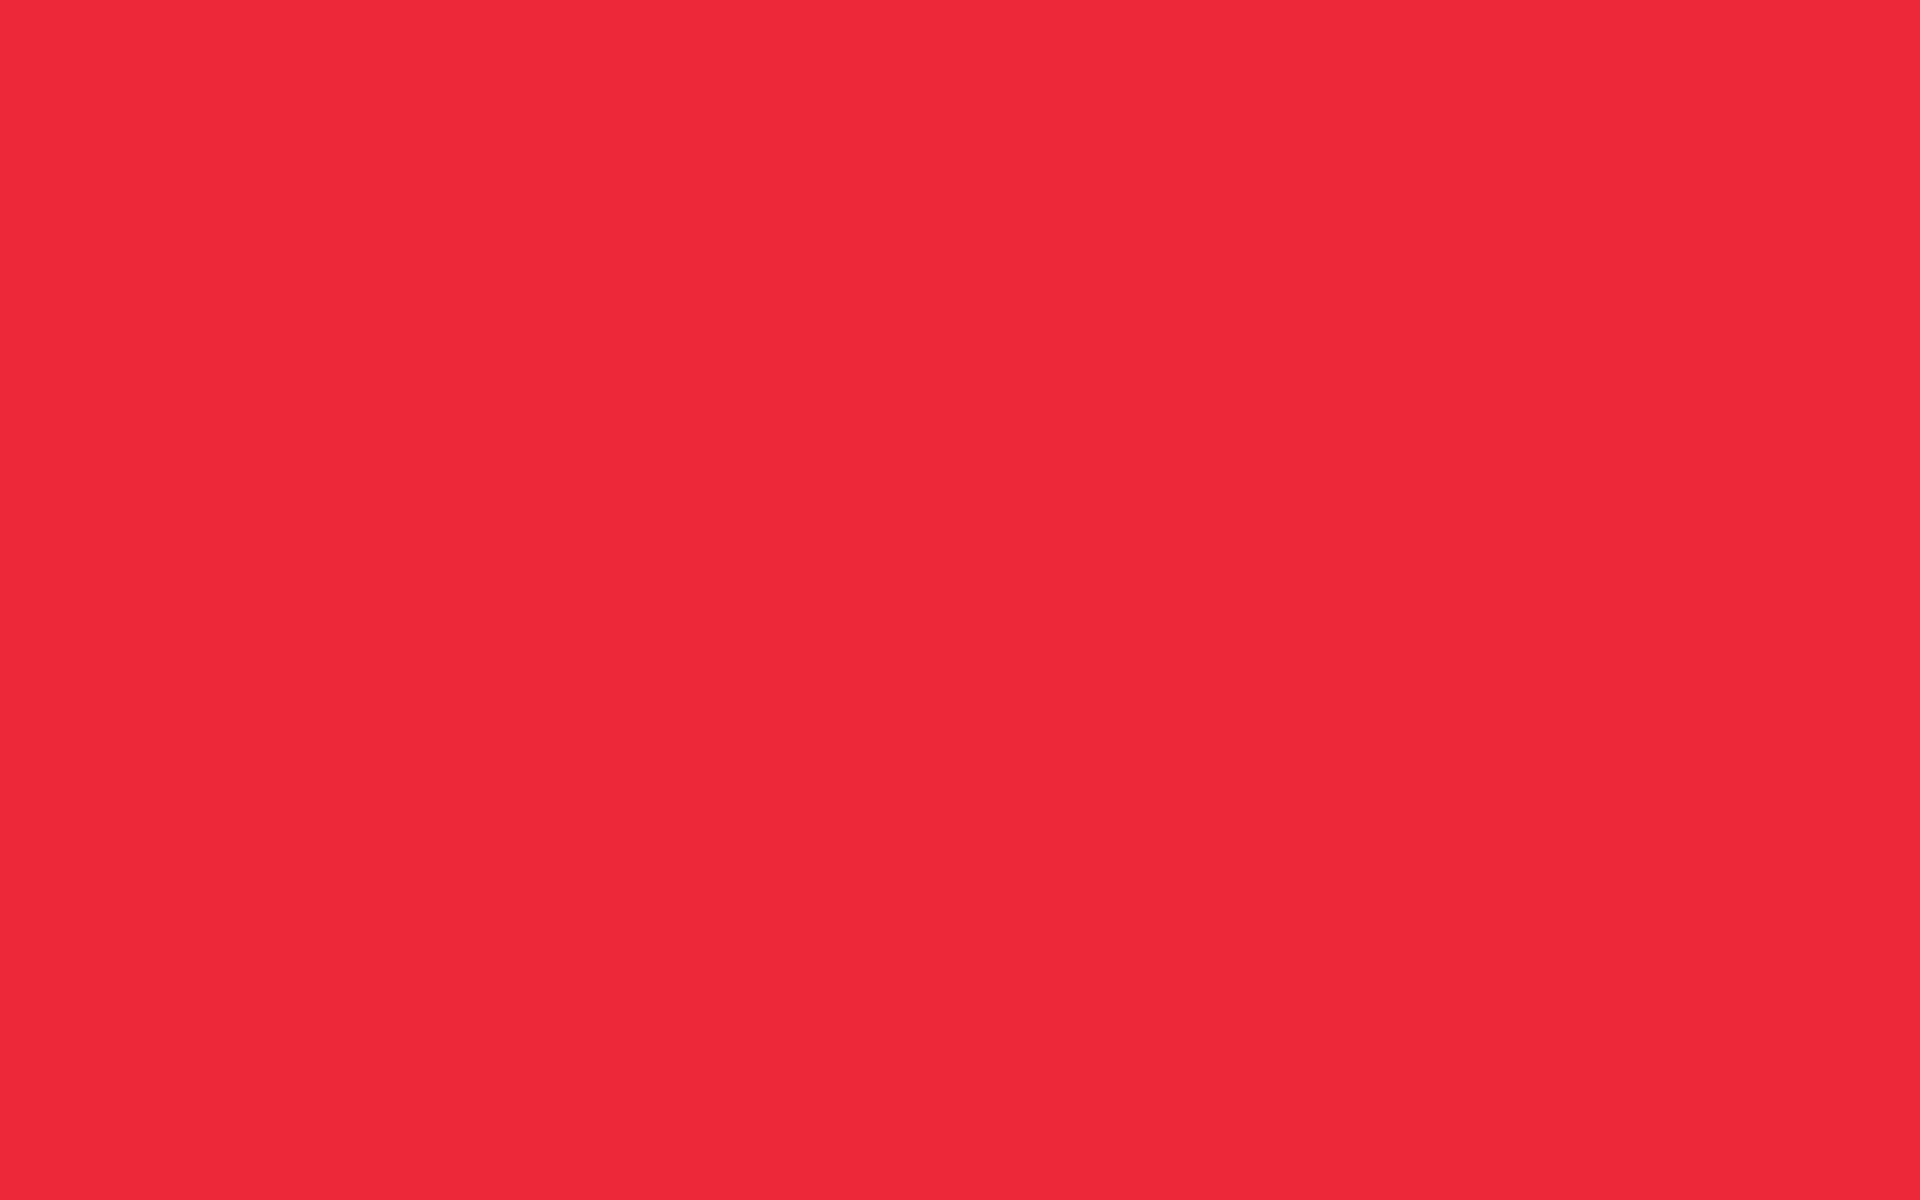 1920x1200 Imperial Red Solid Color Background